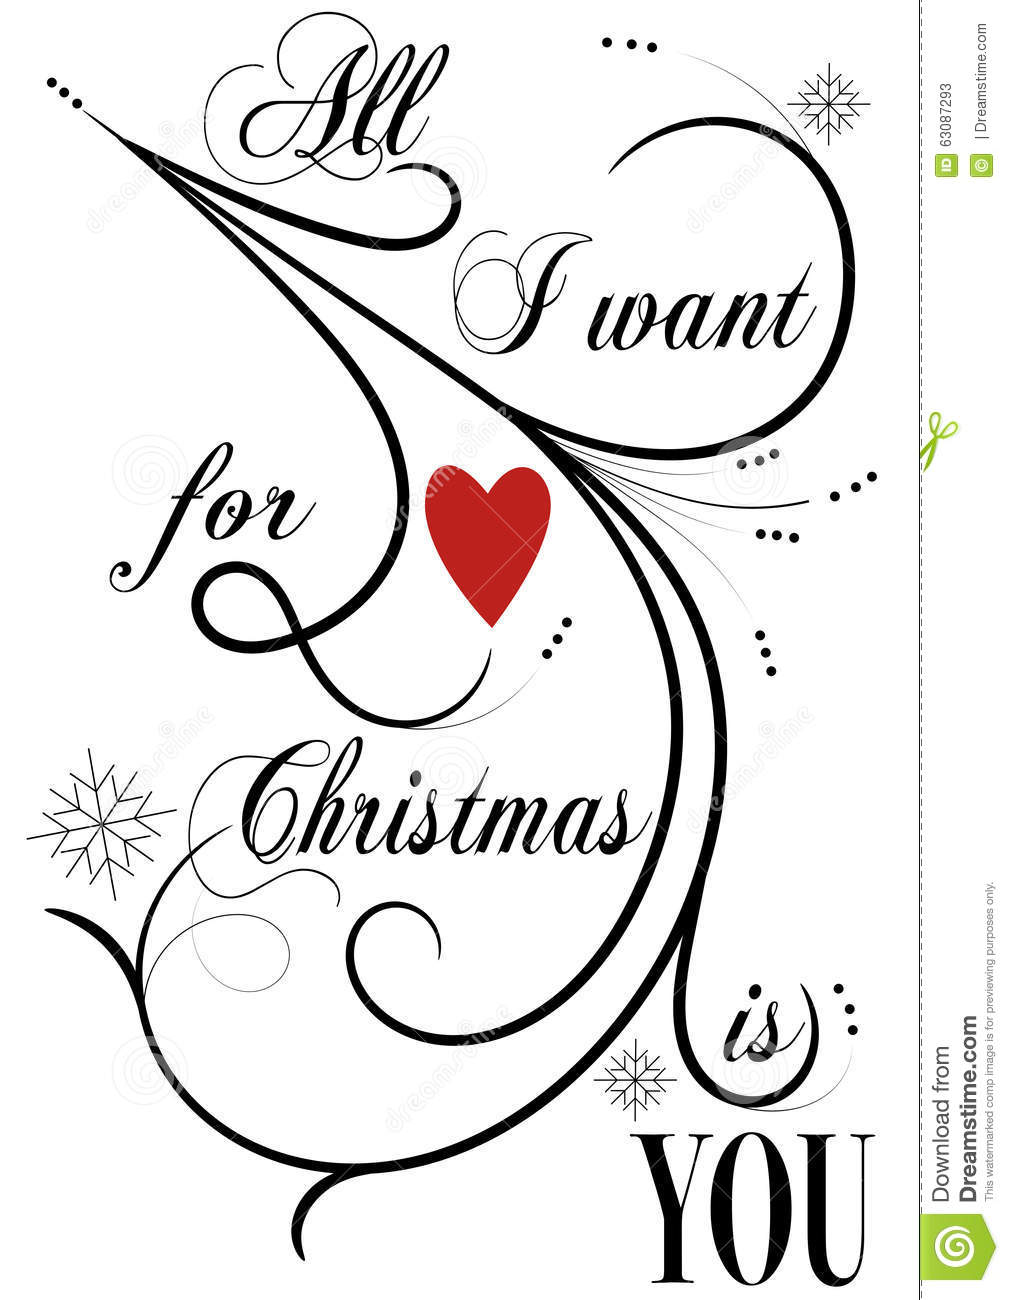 All I Want For Christmas Is You Stock Image - Illustration of twirl ...